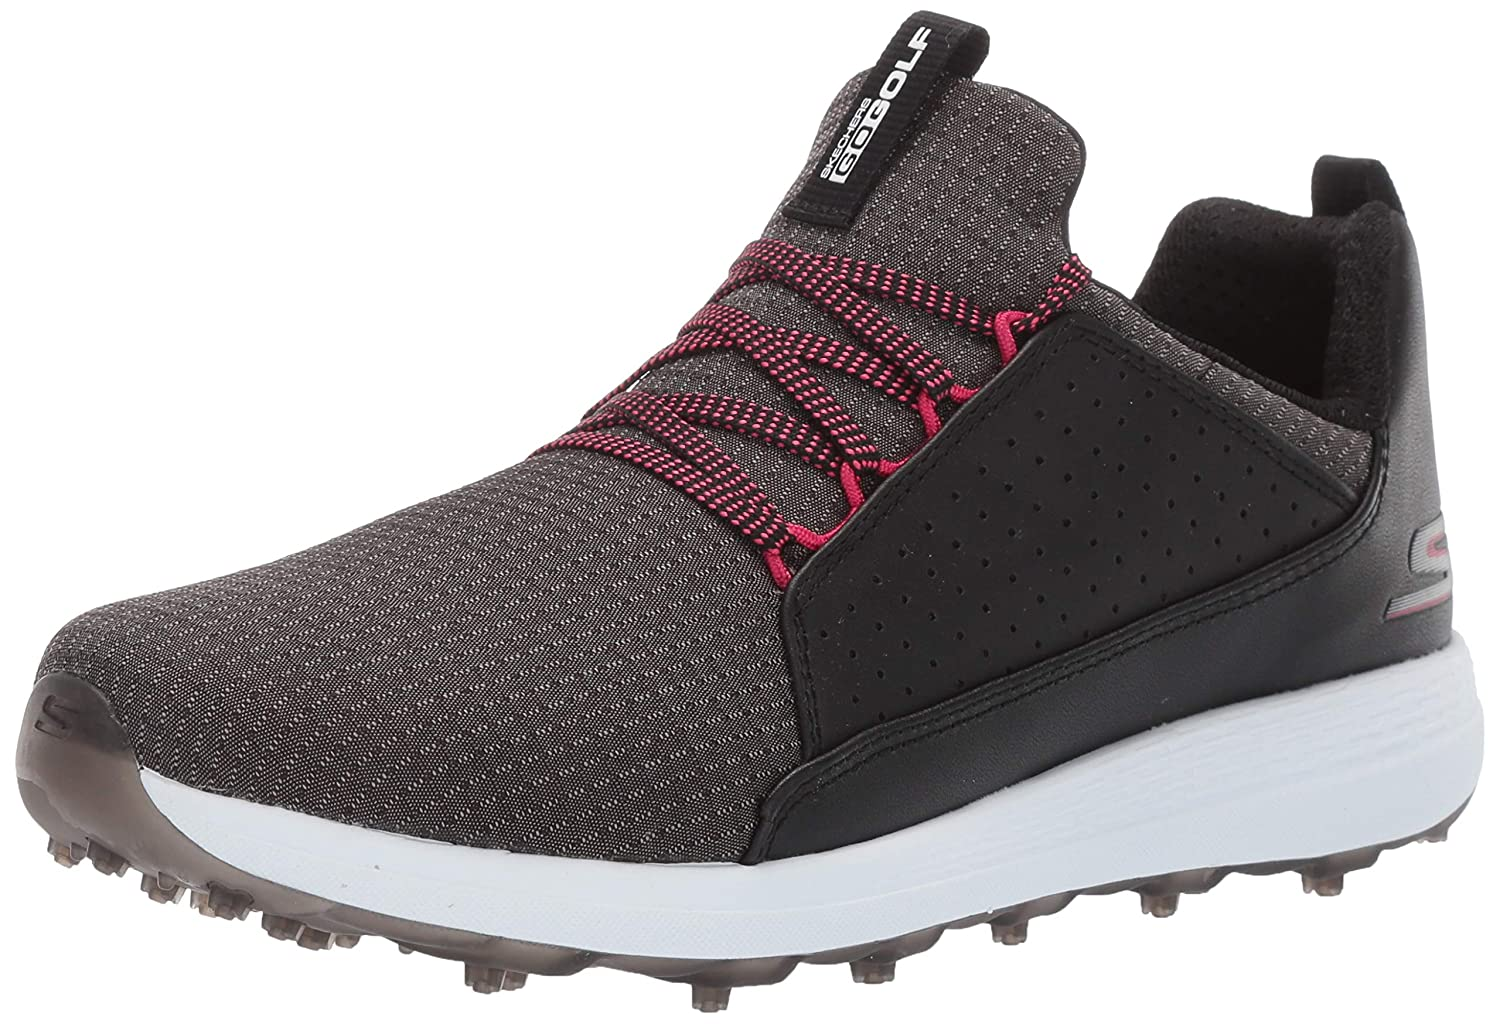 Details about Skechers Women's Go Golf Max Mojo Golf Shoes BlackHot Pink NEW